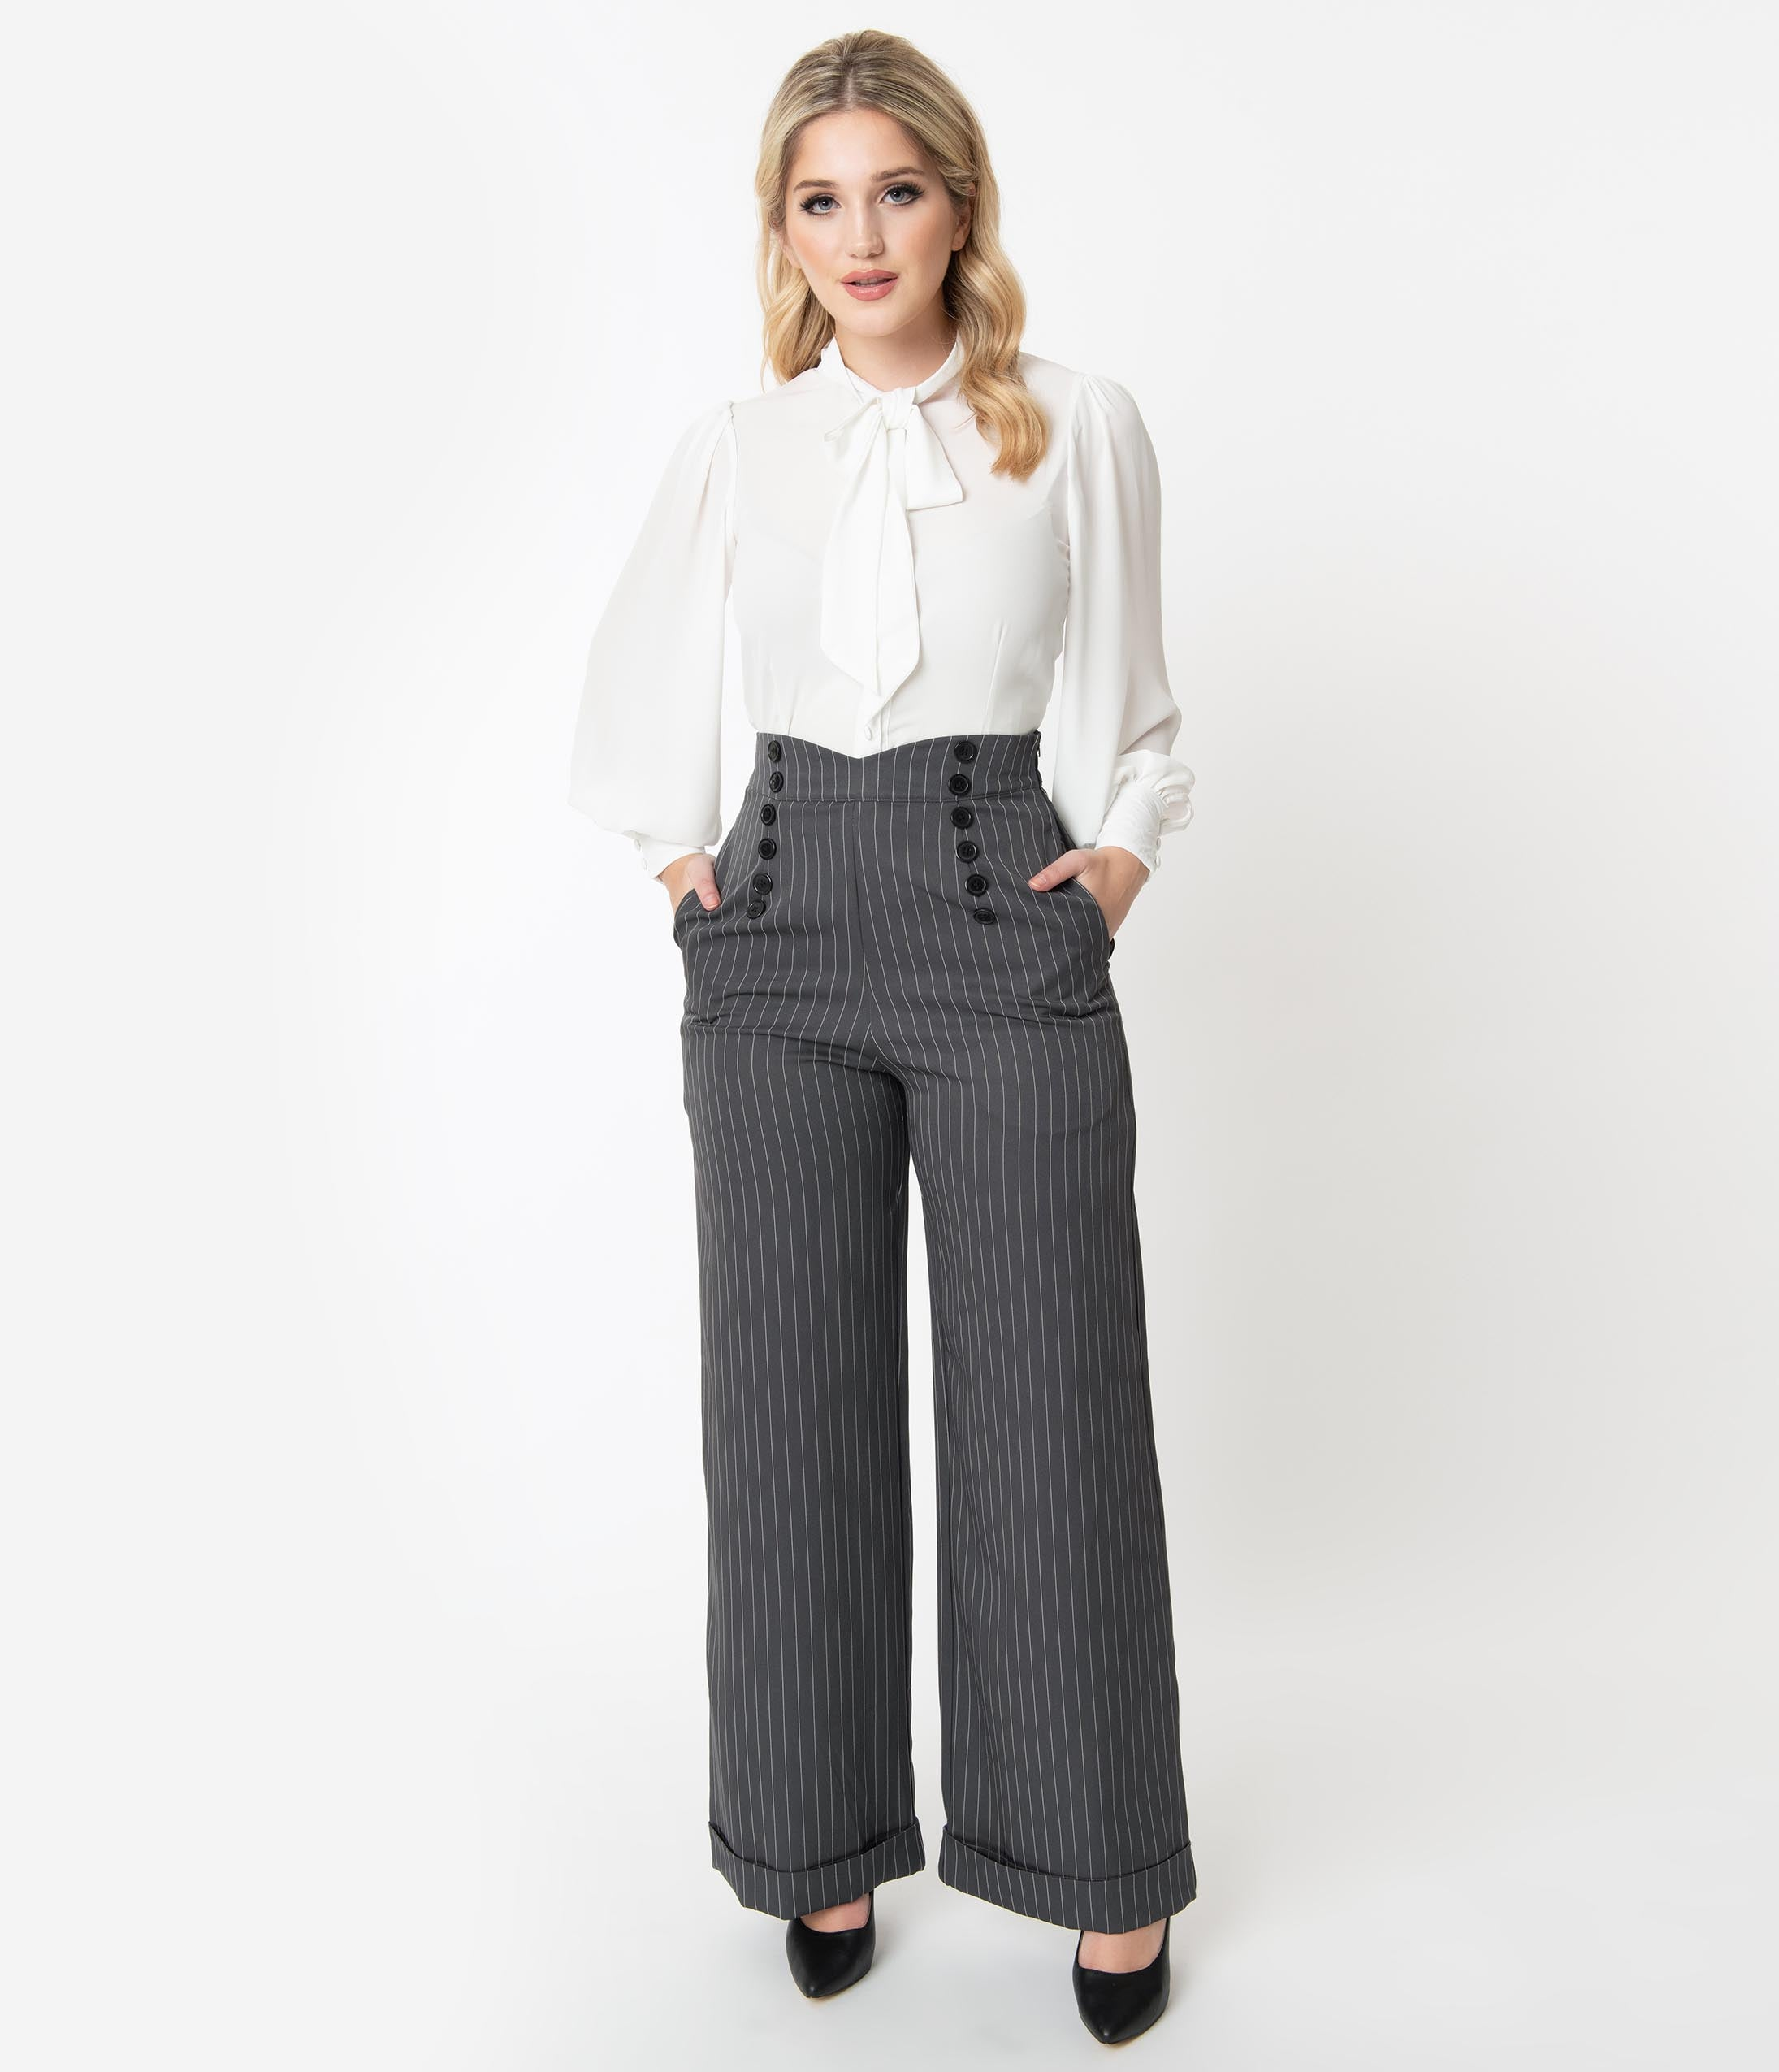 1950s Pants History for Women Unique Vintage 1960S Charcoal Pin Stripe Garland Pants $58.00 AT vintagedancer.com